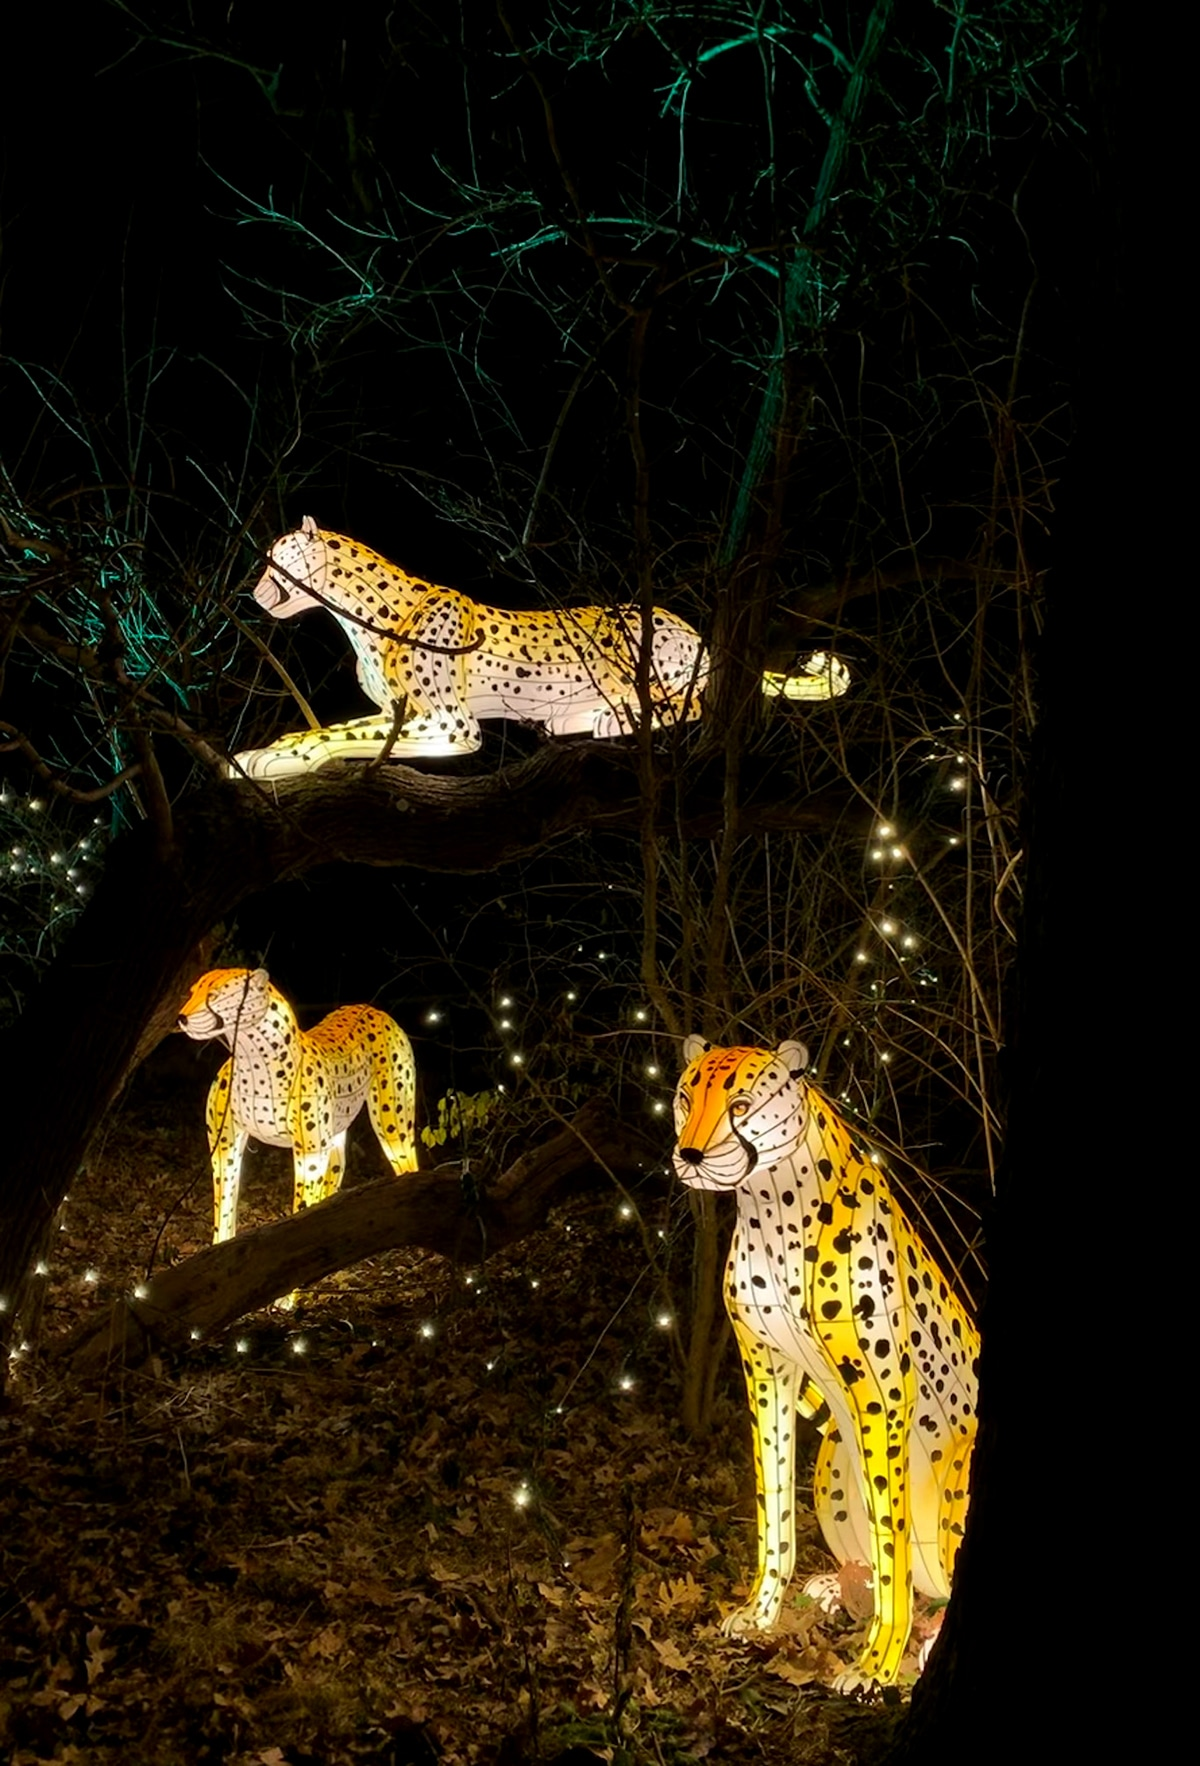 Bronx Zoo Christmas Lights 2020 There's Still Time to See The Bronx Zoo Holiday Lights   NJ Family